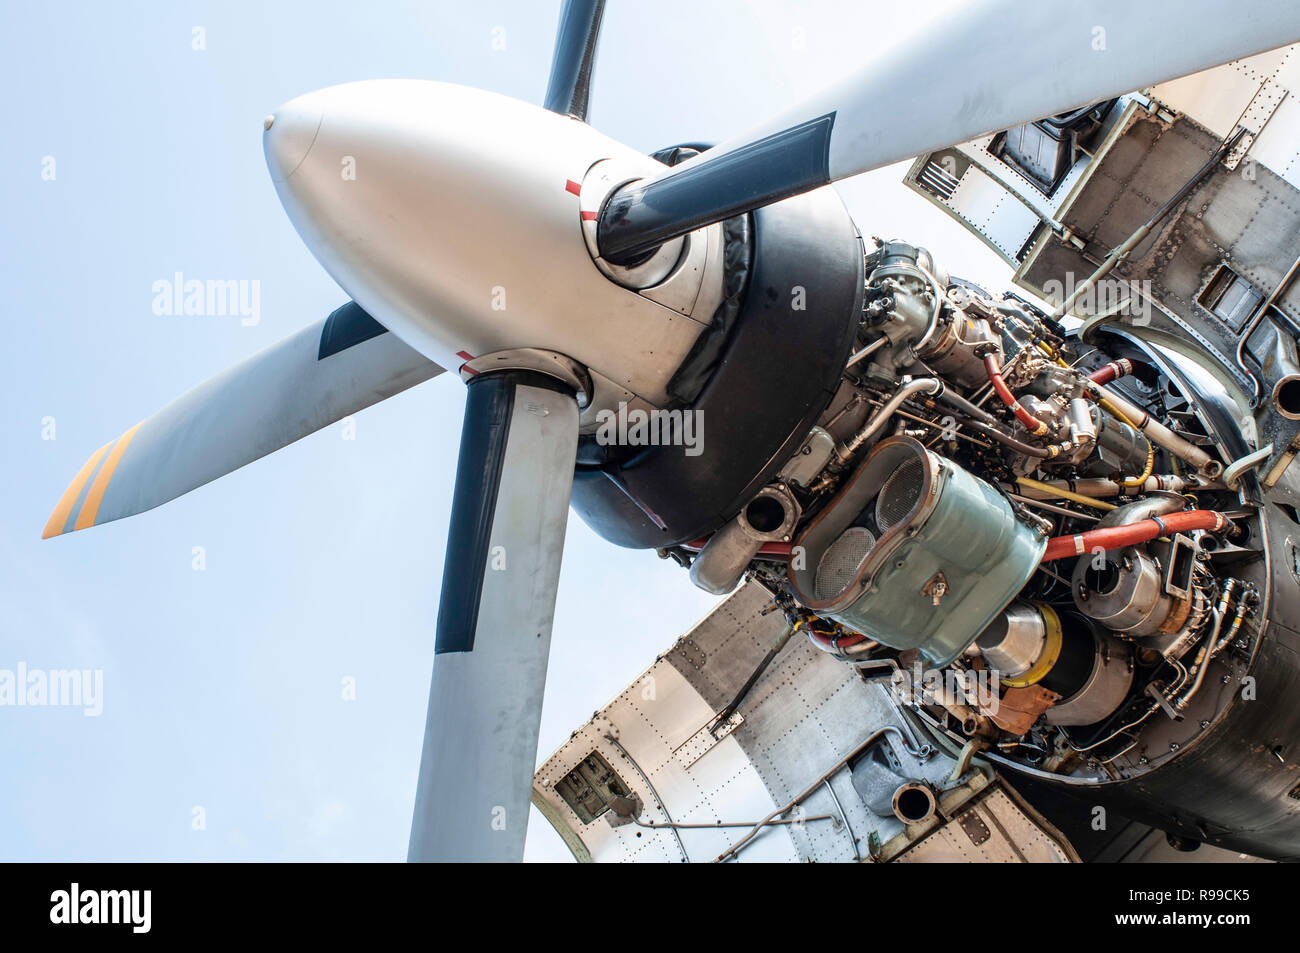 Engine and propeller of a military plane. Disassemble and repair engine of plane. Engine design of a military aircraft. - Stock Image